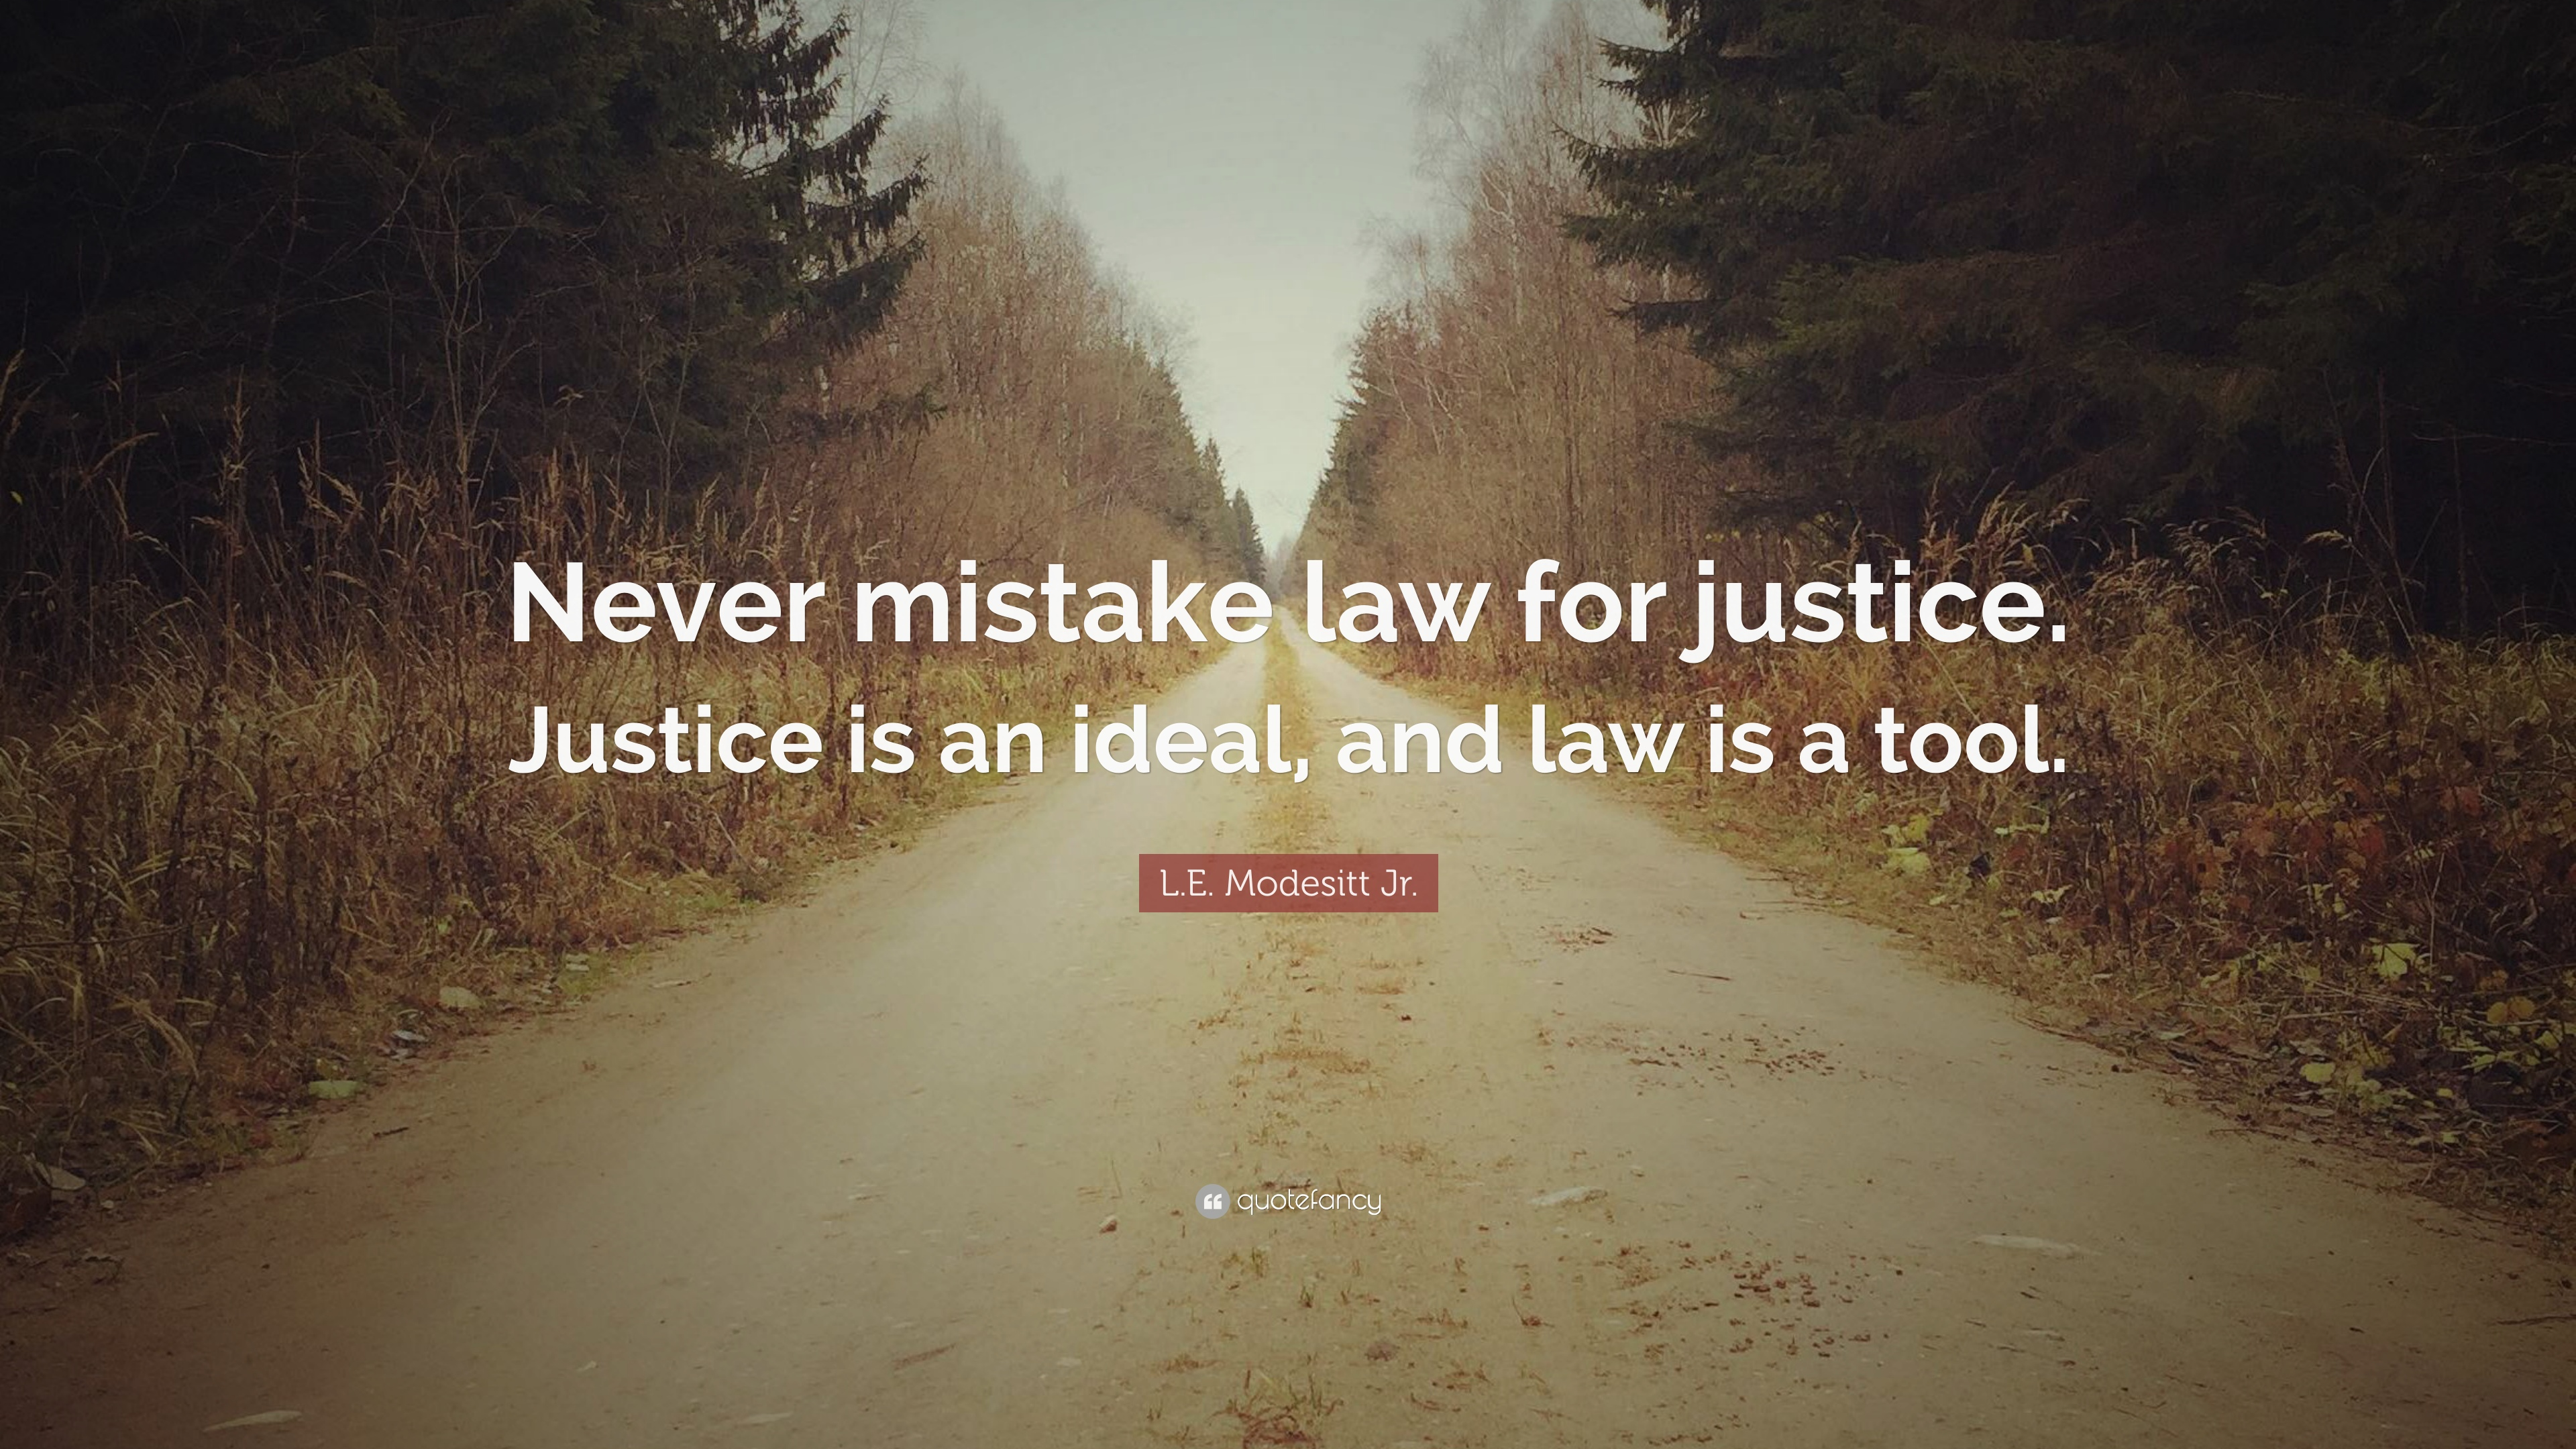 Justice Quotes (40 wallpapers) - Quotefancy